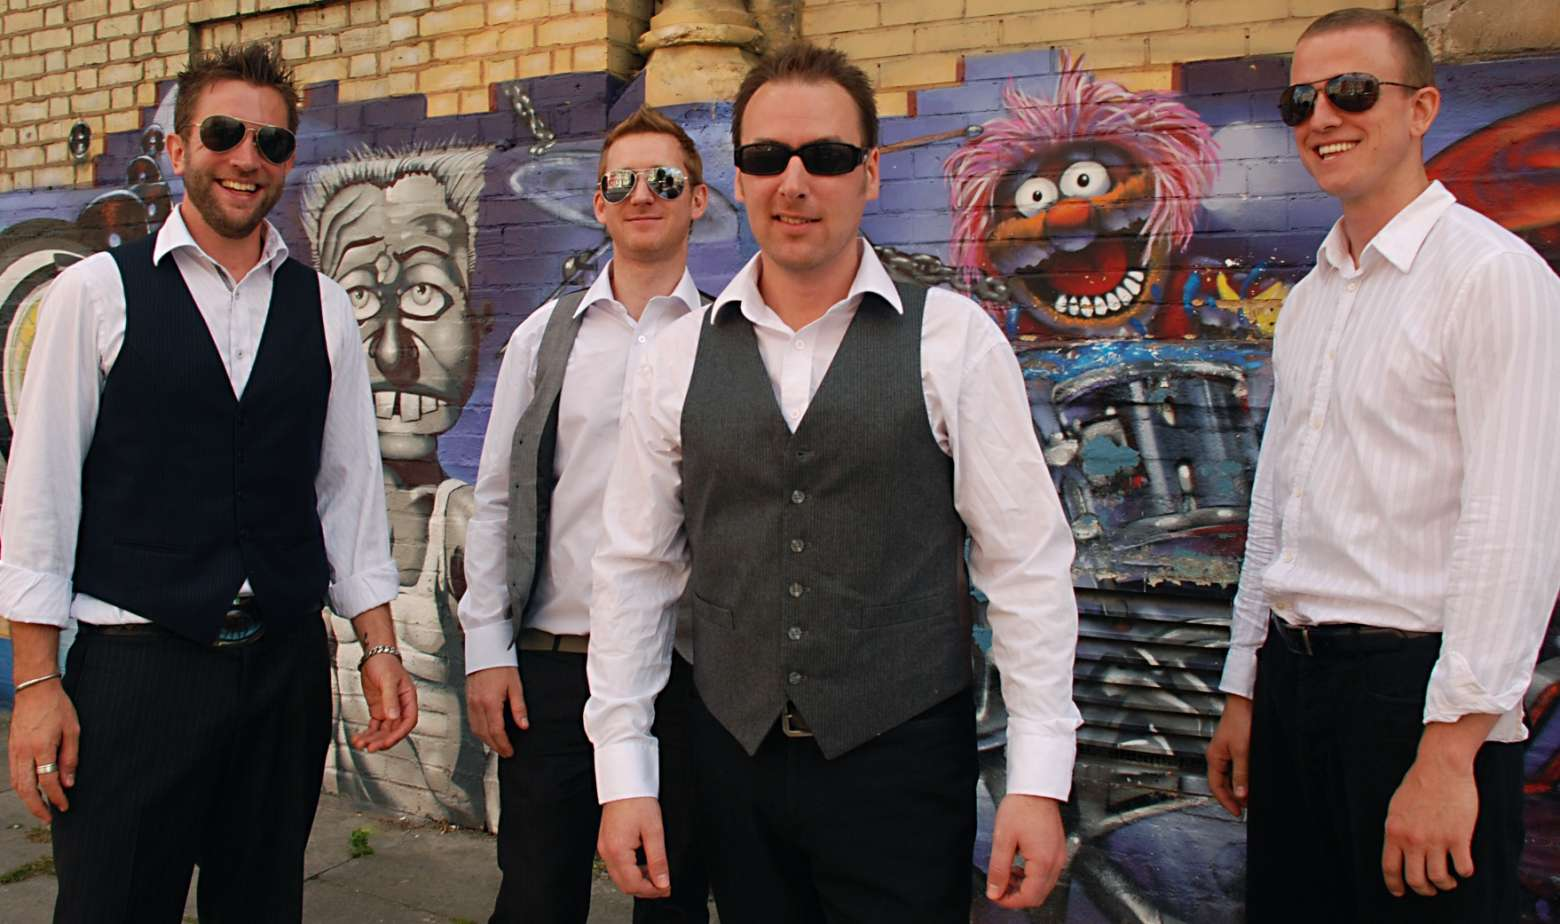 The Files | London Wedding & Party Band For Hire